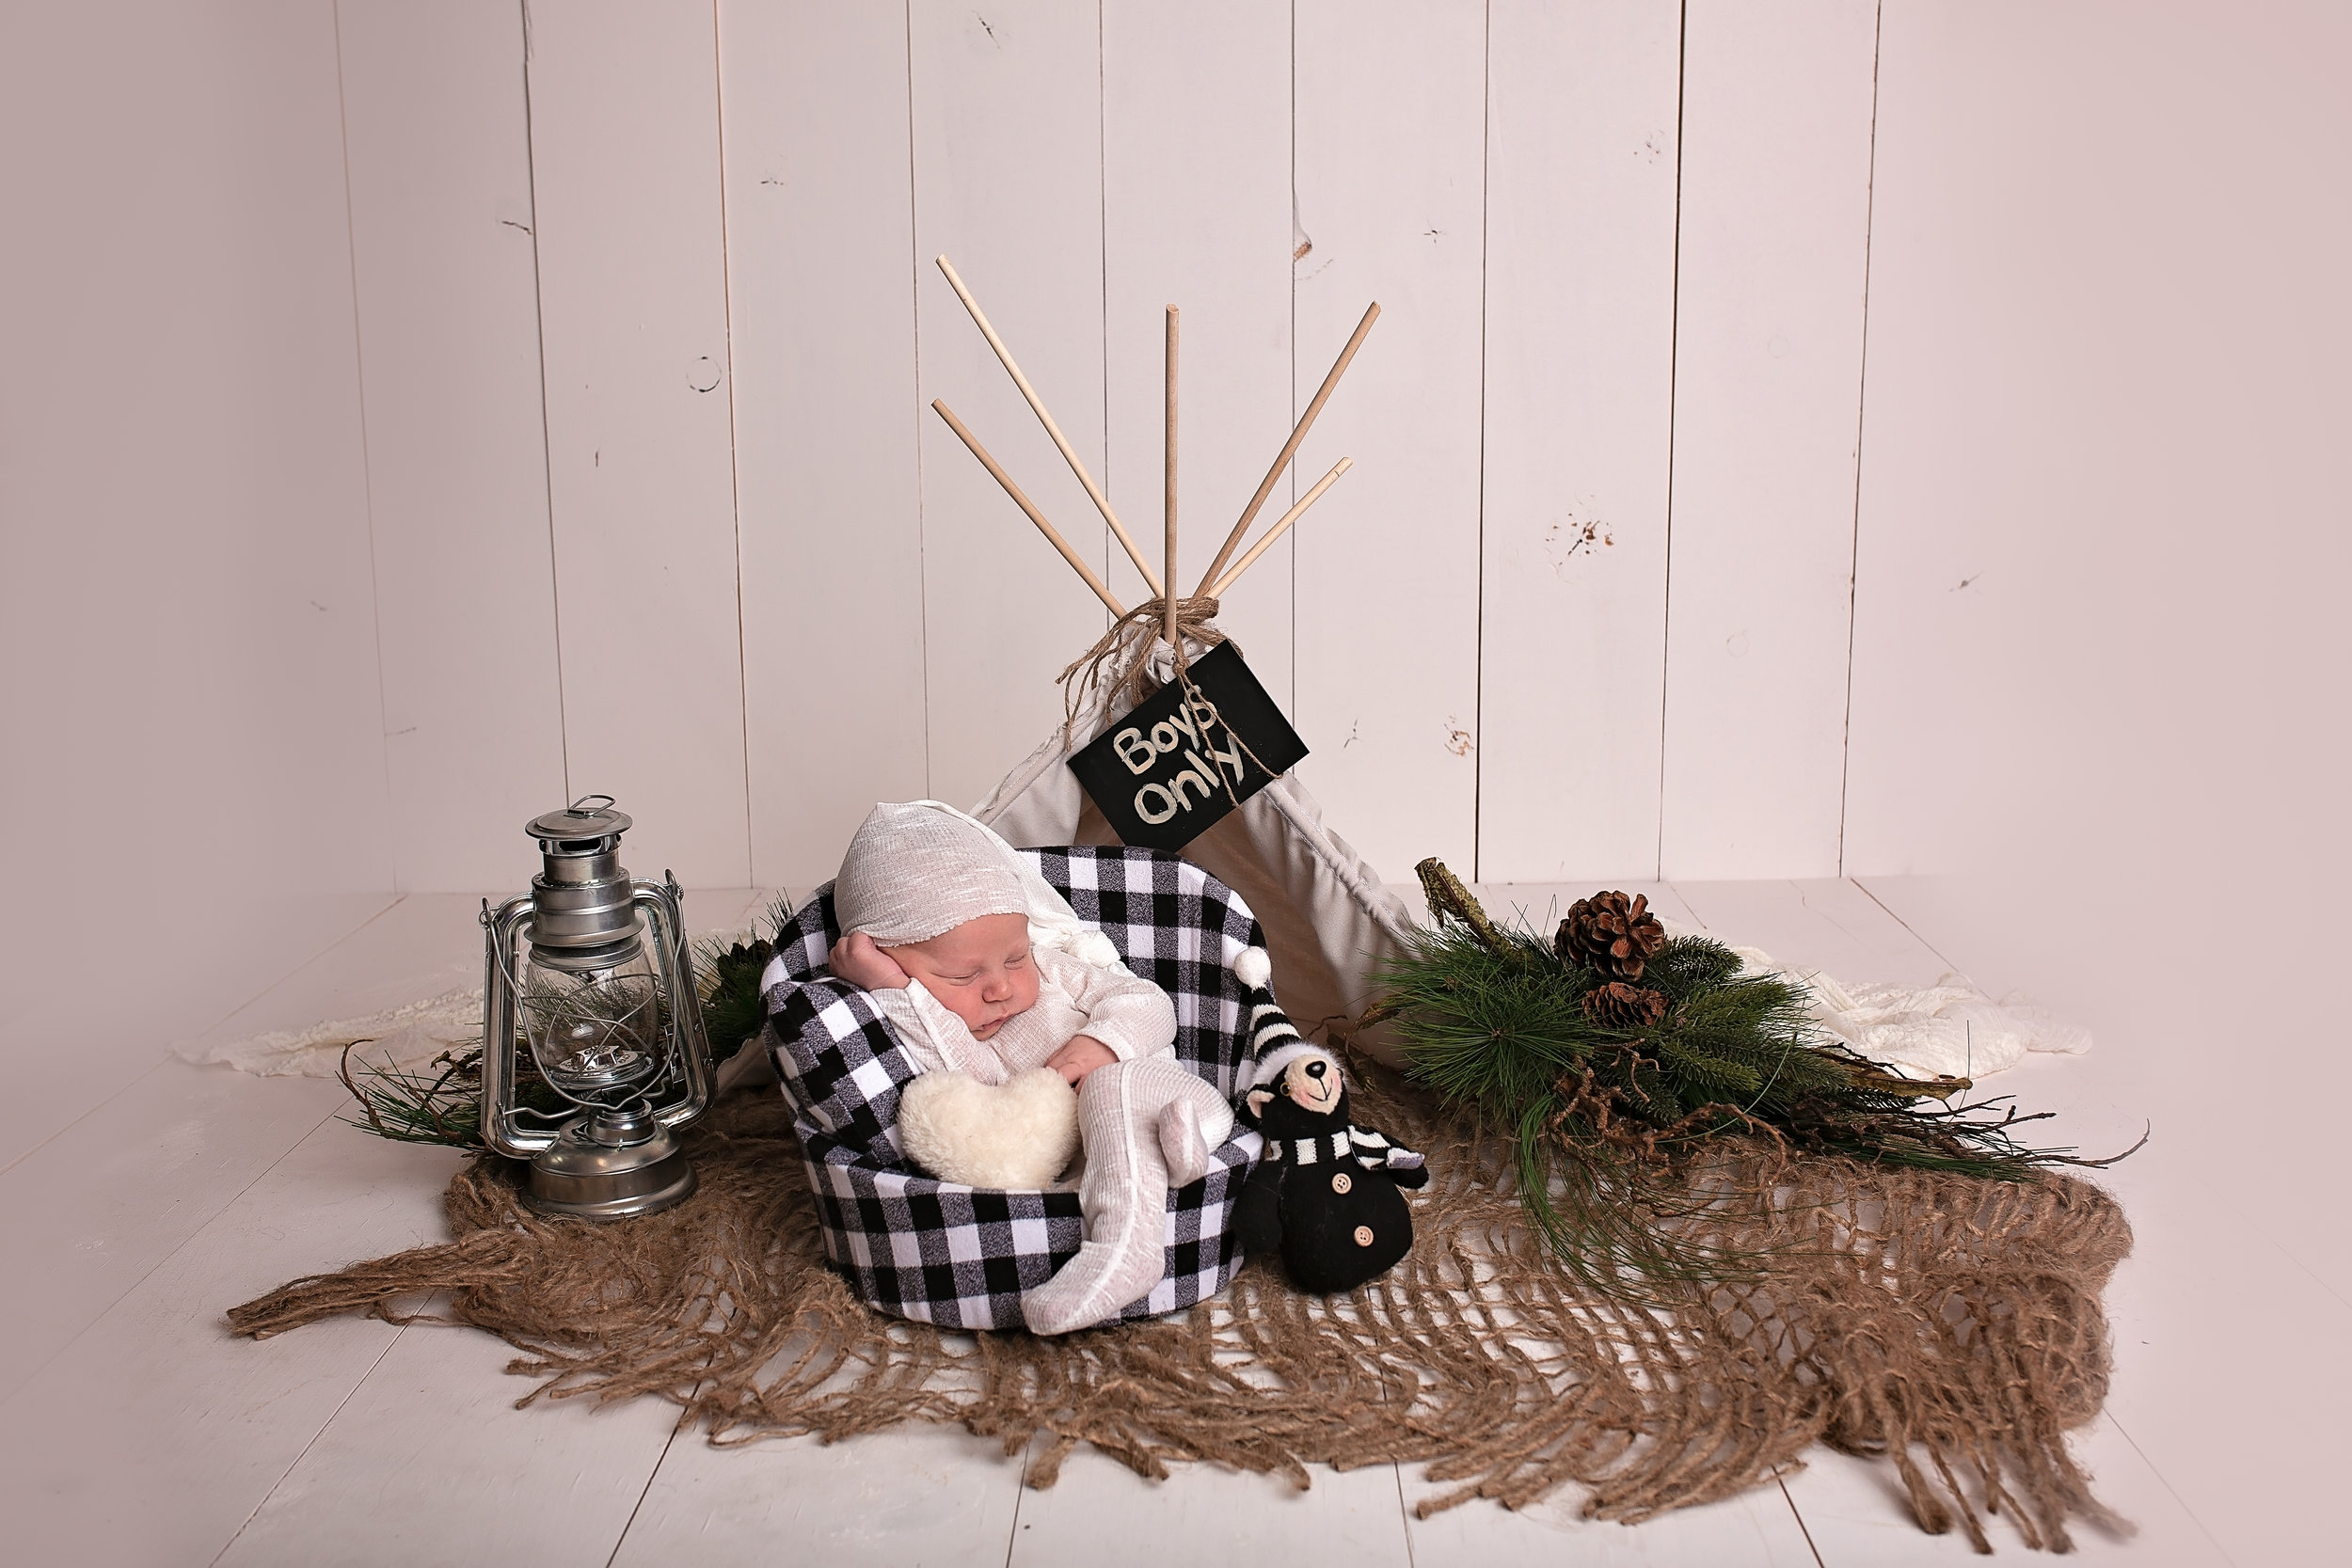 18_11_04 Melody Foster Newborn Session - Pryson45.jpg